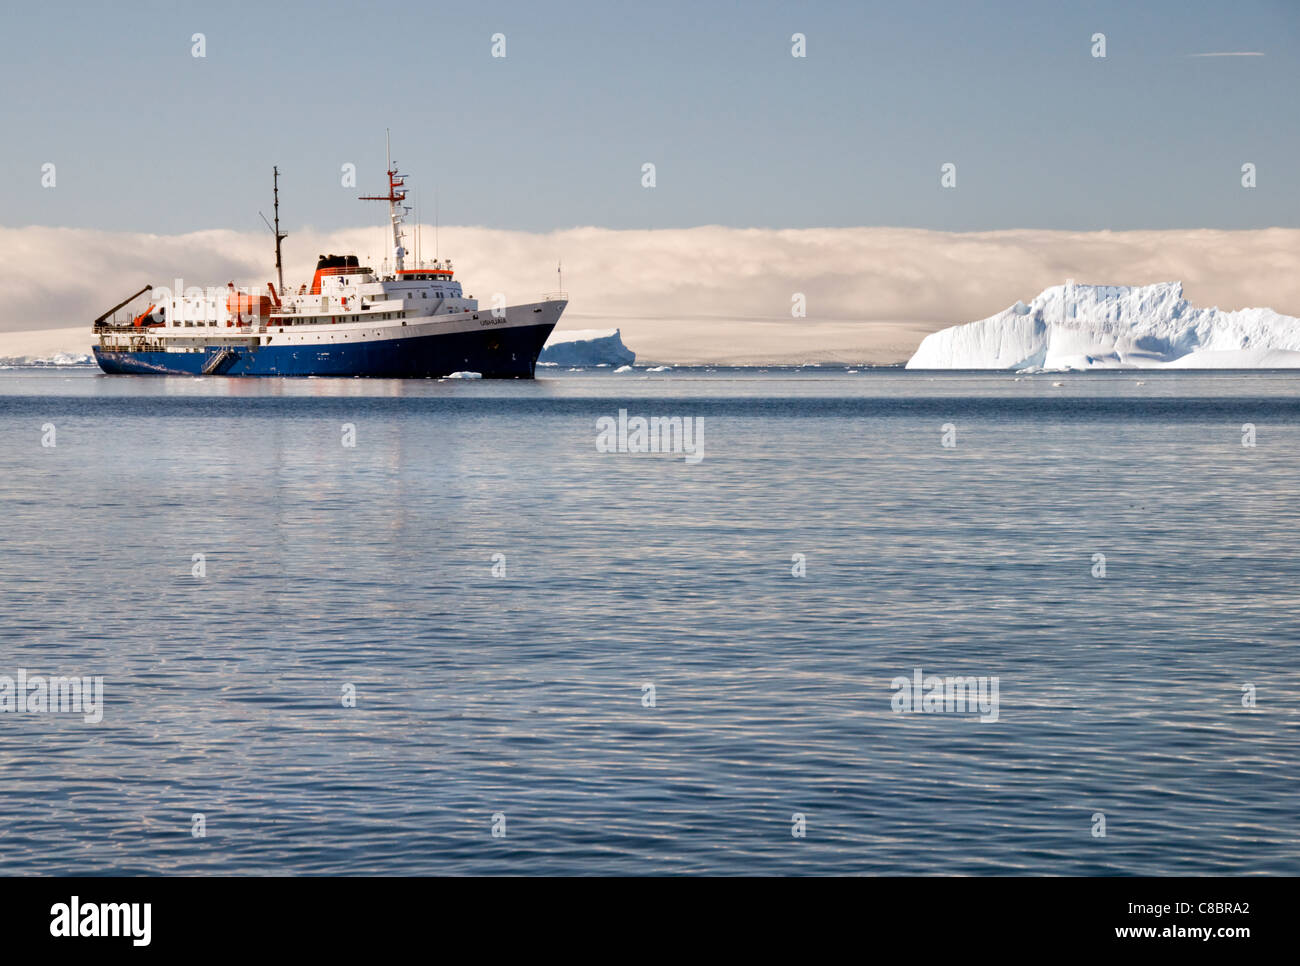 Antarctic expedition vessel the MV Ushuaia anchored in Antarctica - Stock Image